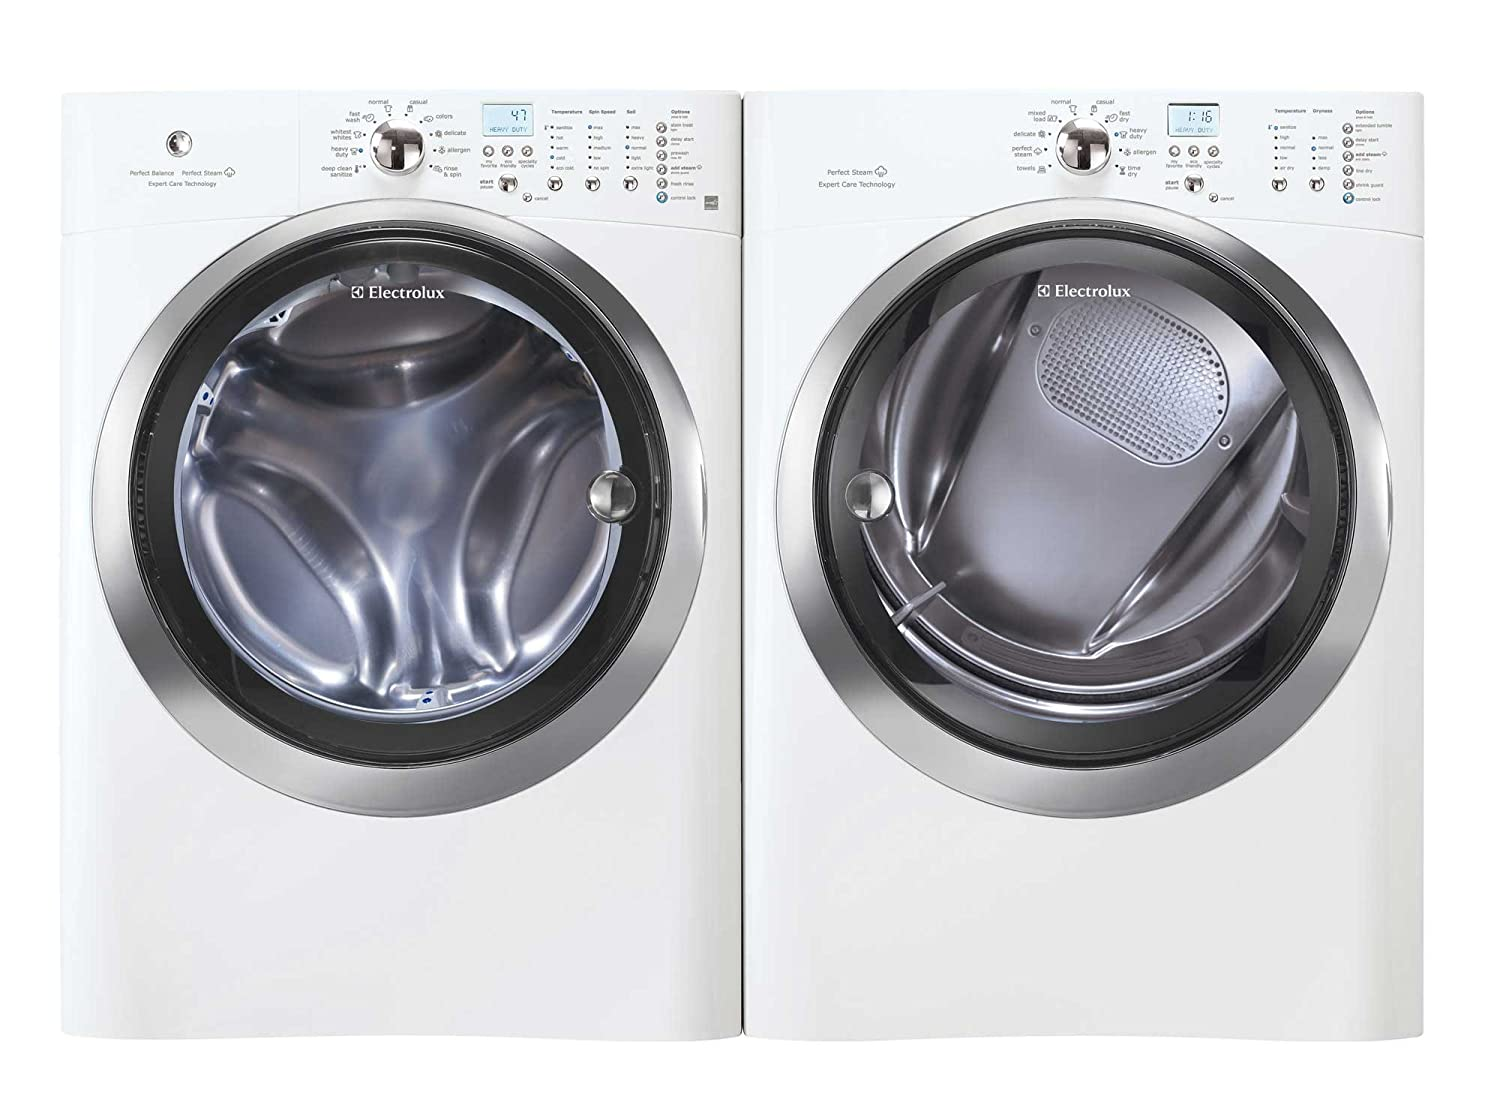 Electrolux Laundry Pair System Special Bundle *Electrolux IQ Touch High Efficiency Front Load Laundry Pair with ELECTRIC Dryer, and Steam (EIFLS60JIW_EIMED60JIW)-Island White Color